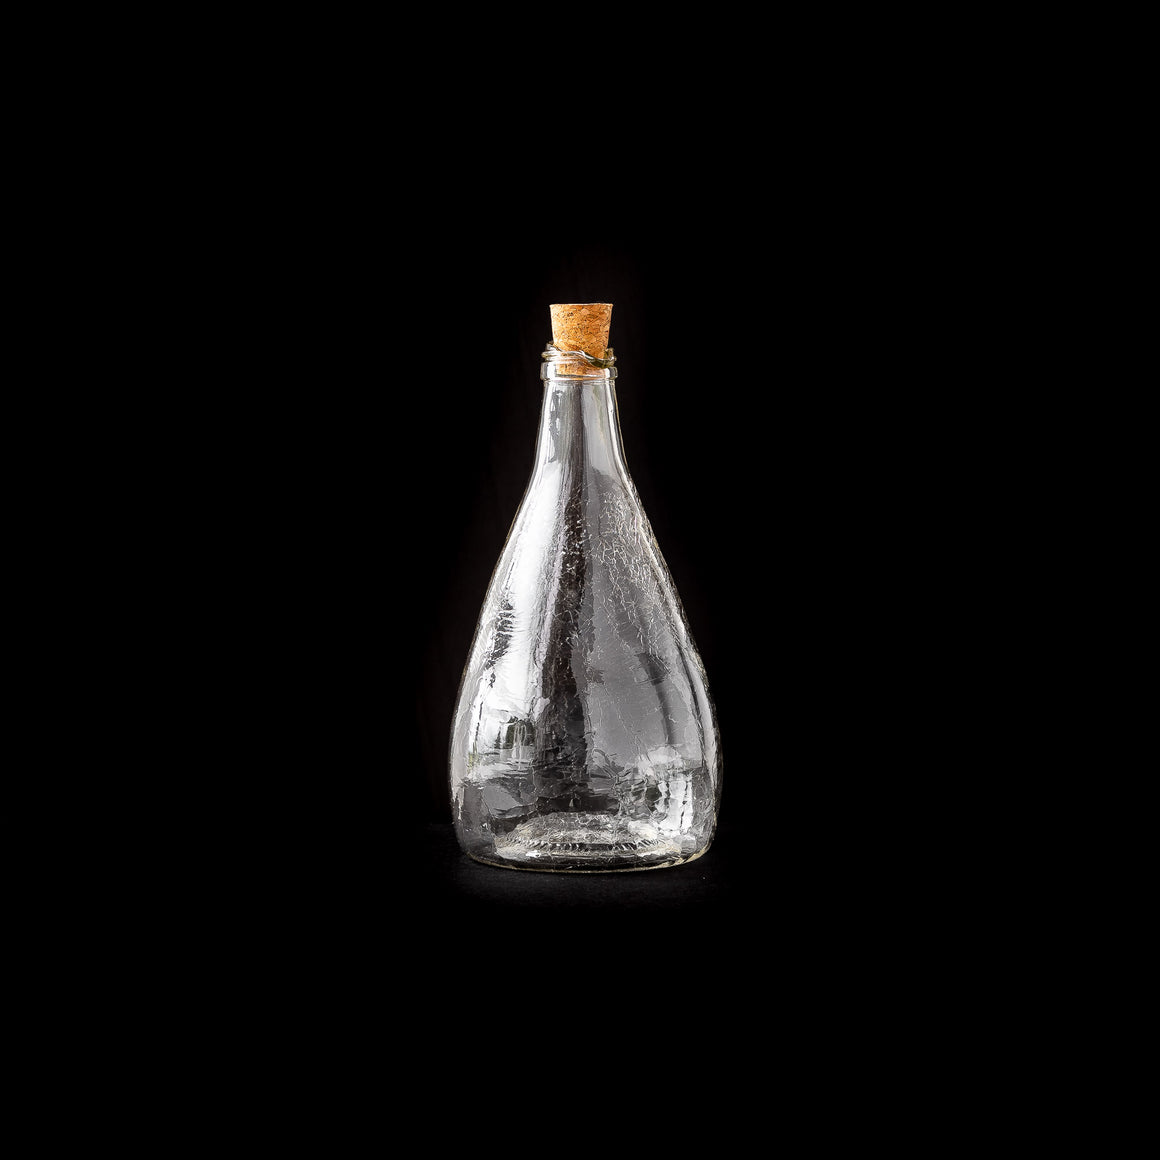 Blown Glass Maple Syrup Bottle - Latté Texture - Sold by Chic & Basta